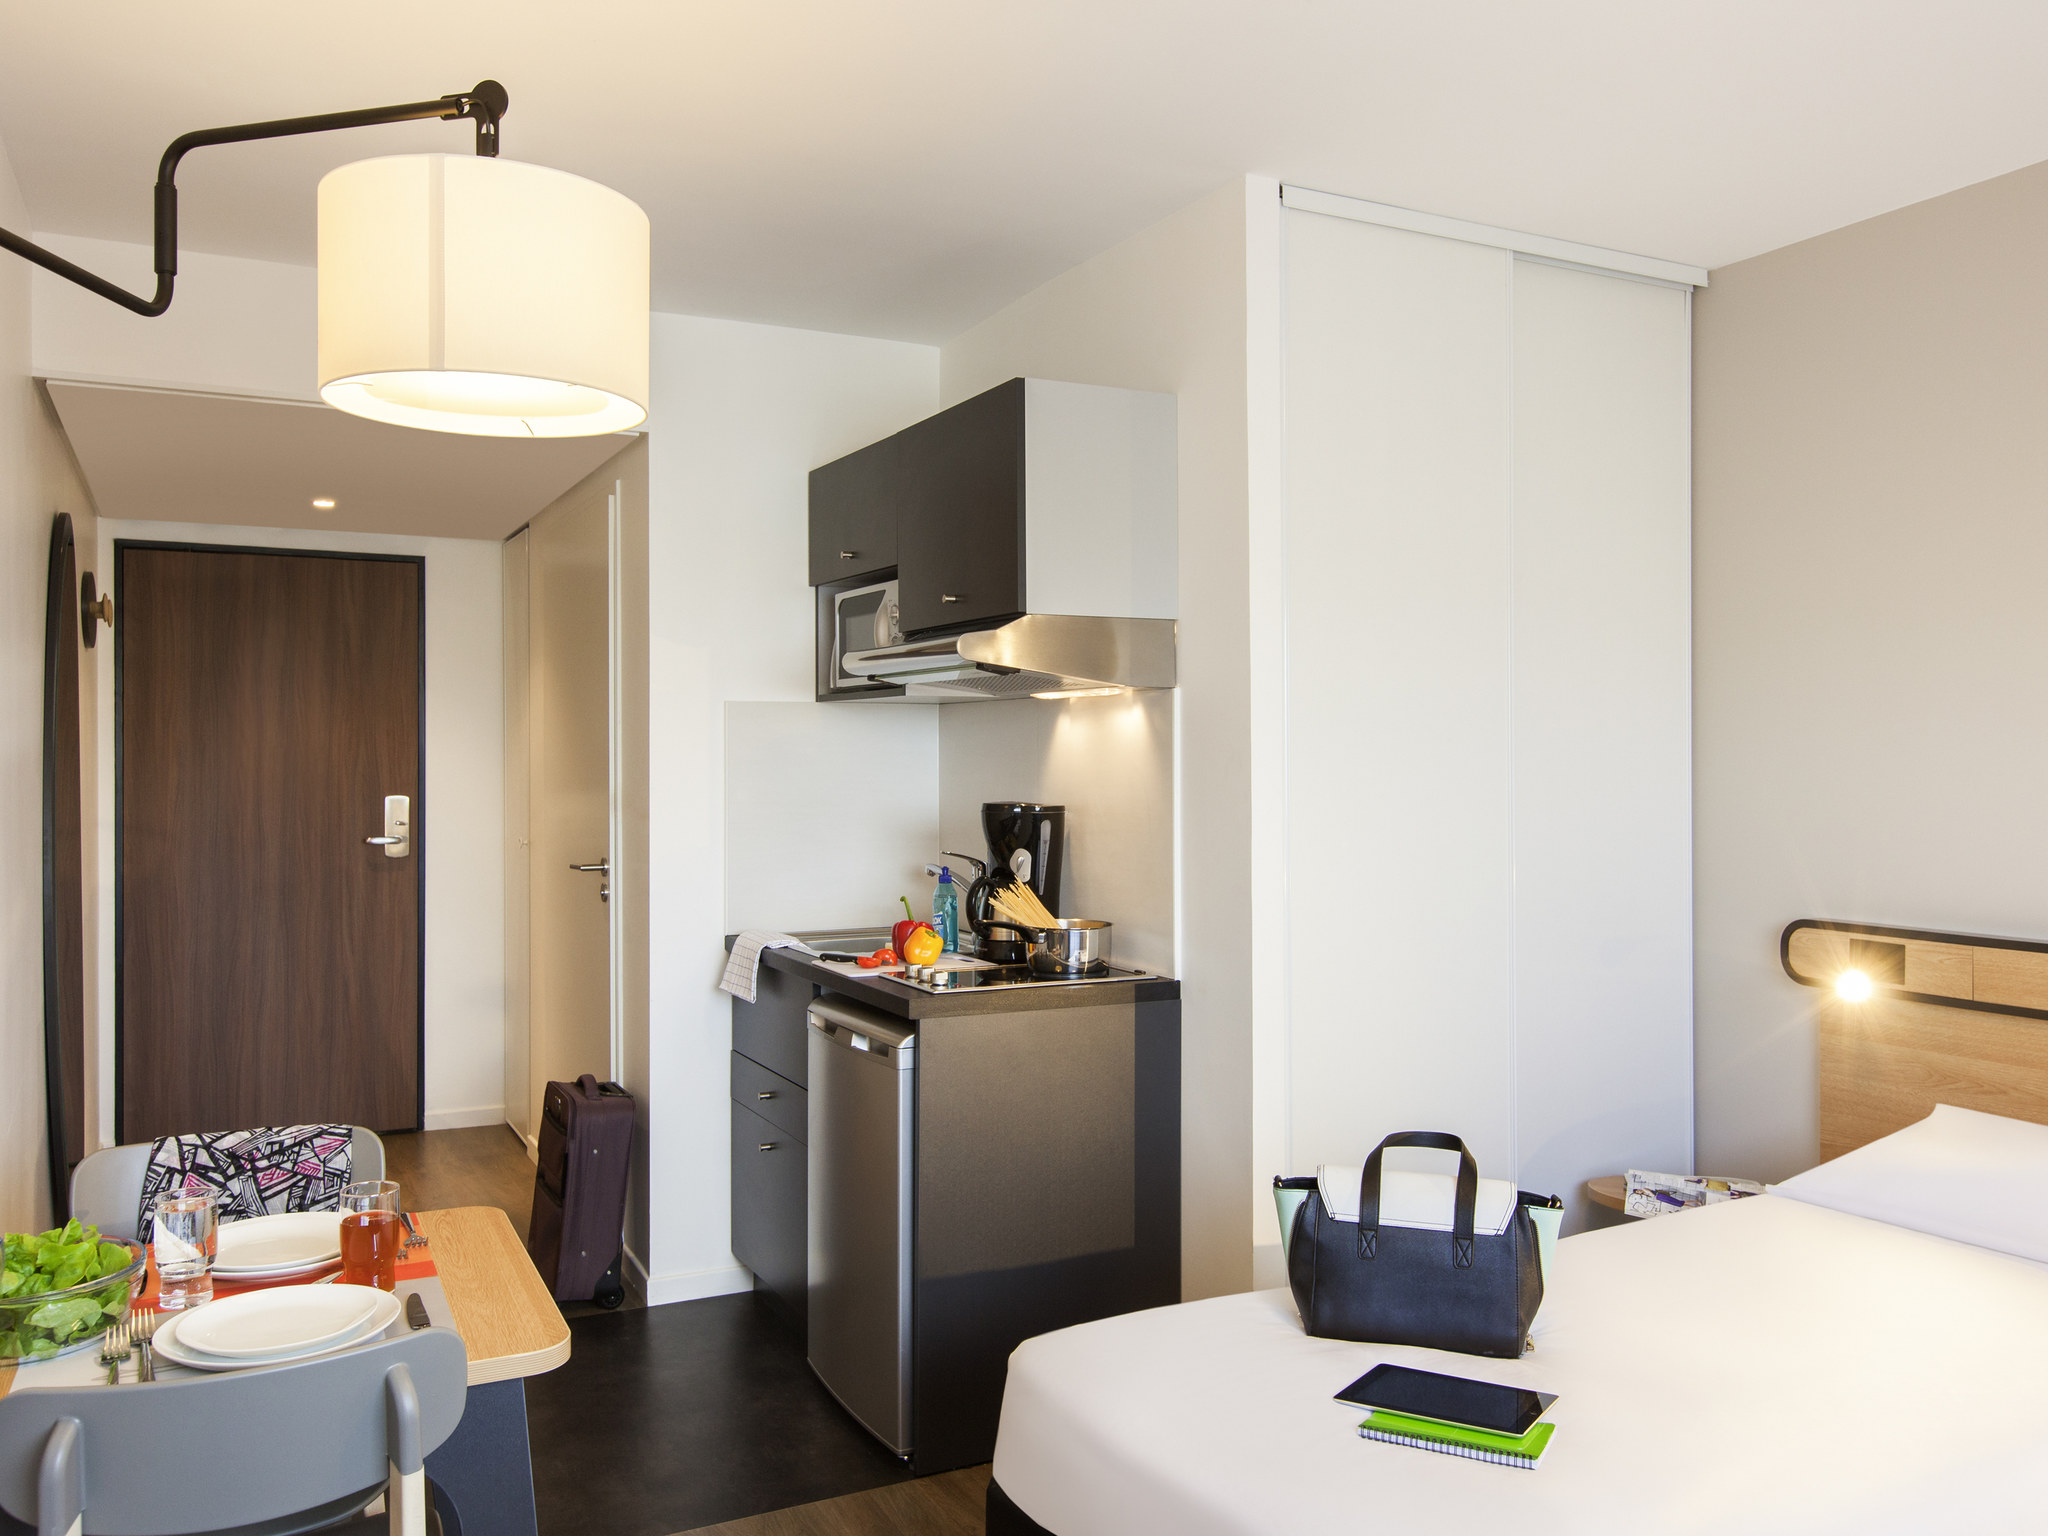 فندق - Aparthotel Adagio access Nancy Centre